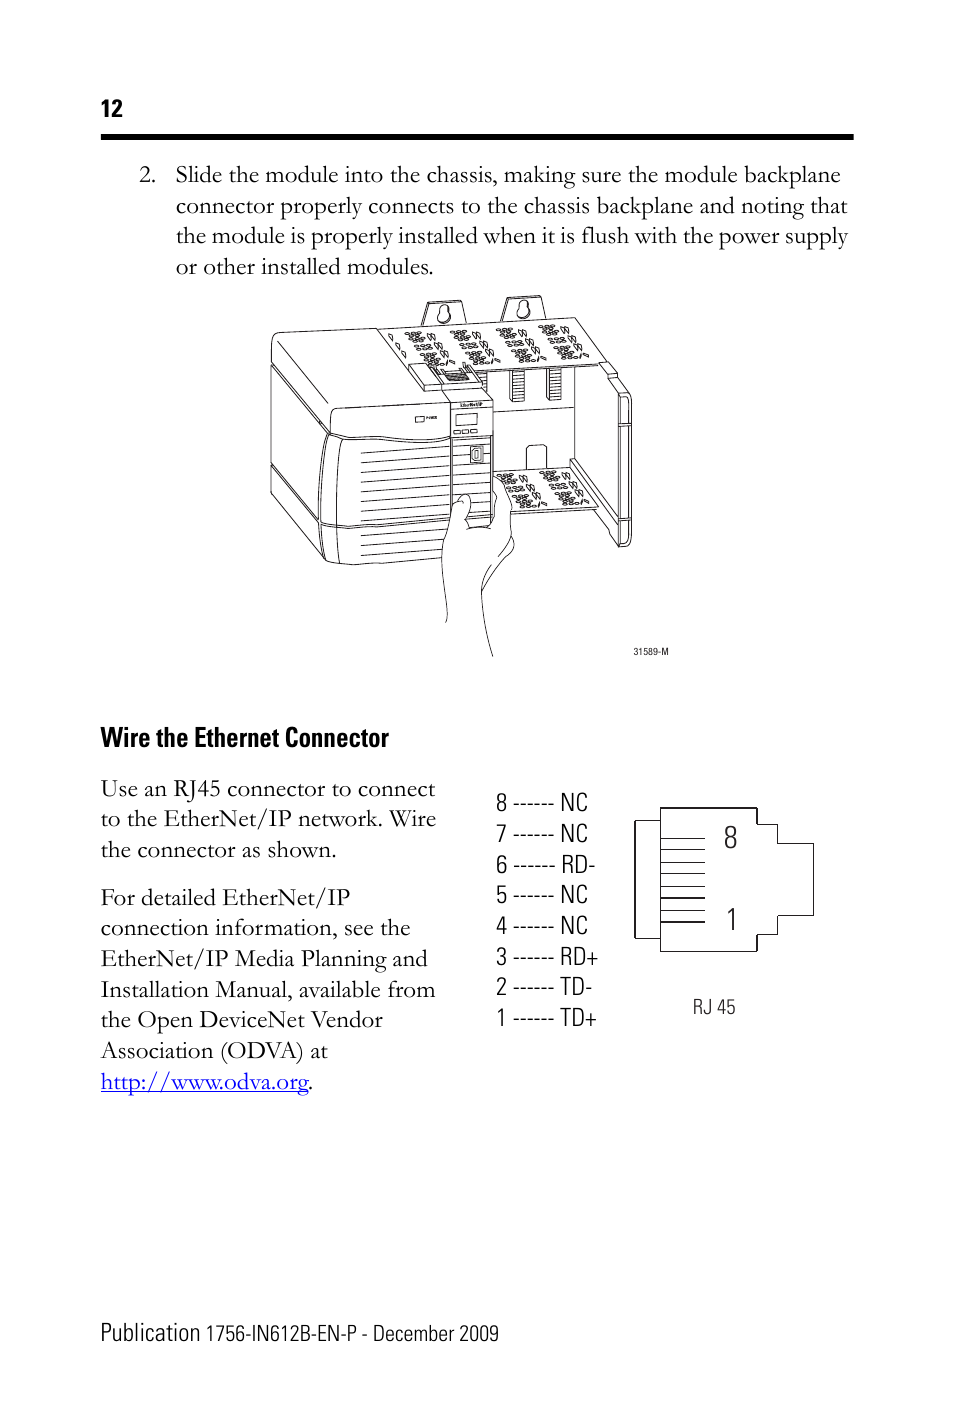 Rj45 Plug Wiring For Communication Connection Electrical Ethernet Wire The Connector Rockwell Automation 1756 En3tr Rj45b